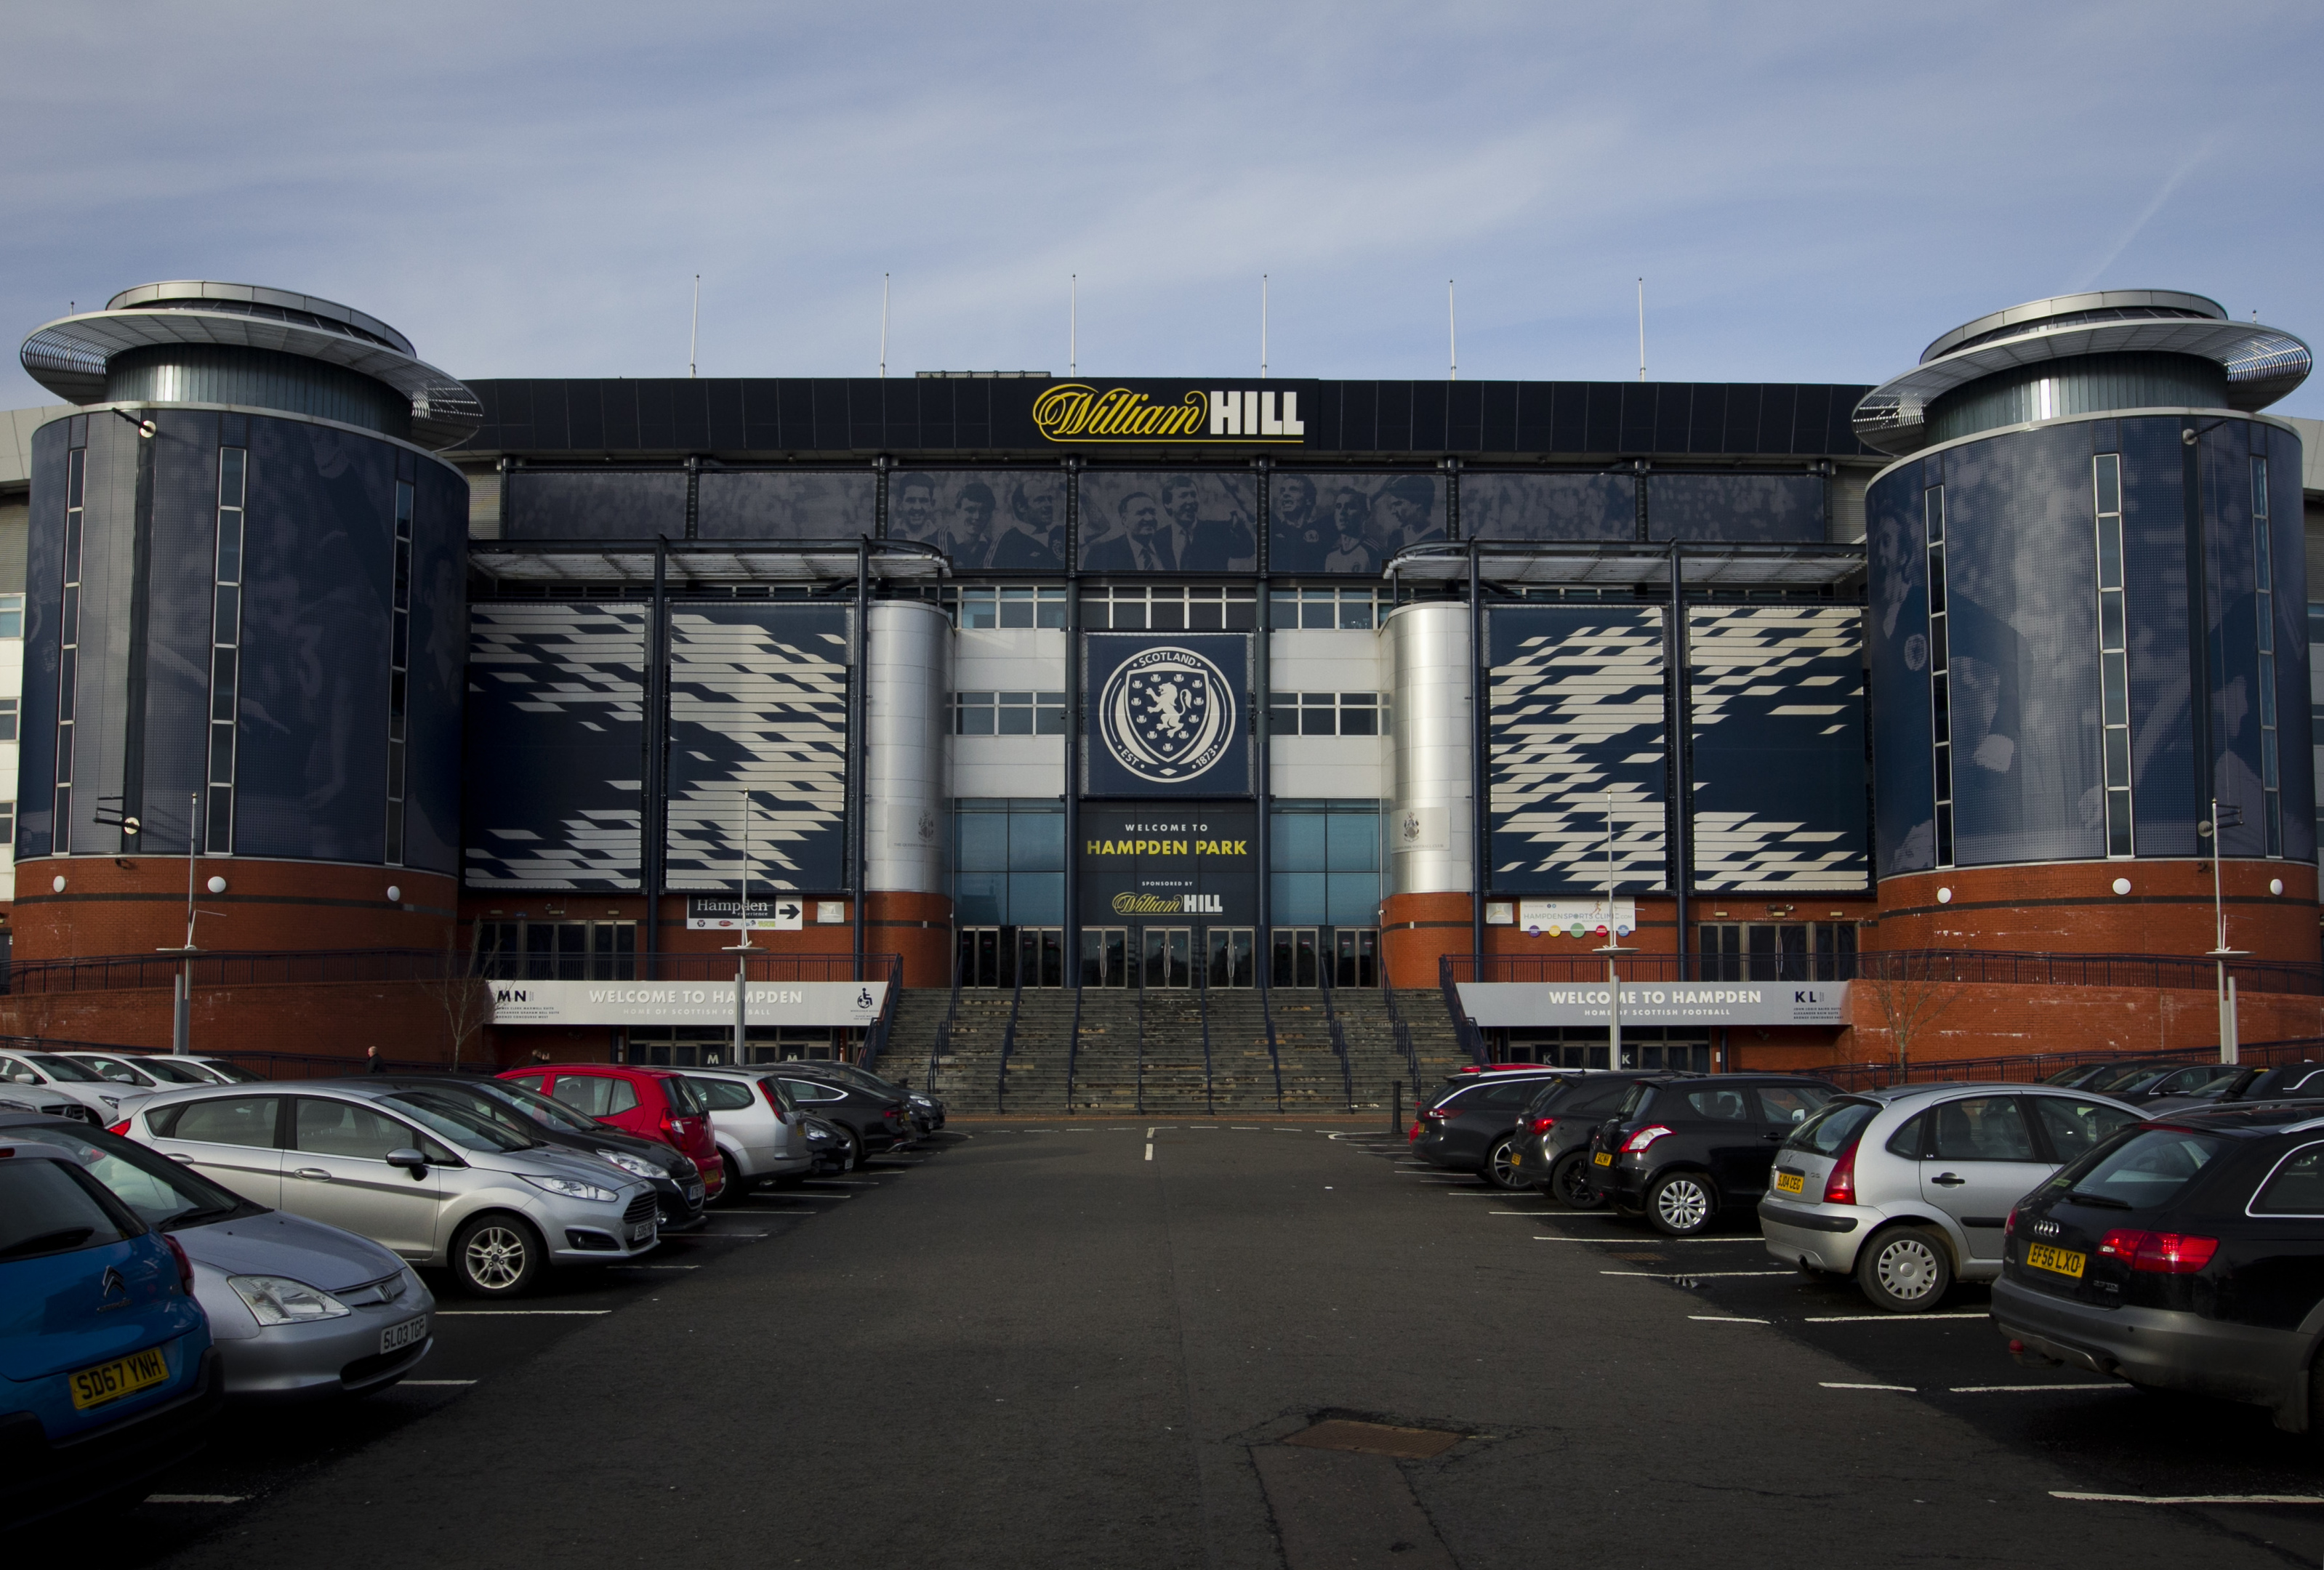 Scotland's national stadium and home of Queen's Park, Hampden (Andrew Cawley / DC Thomson)